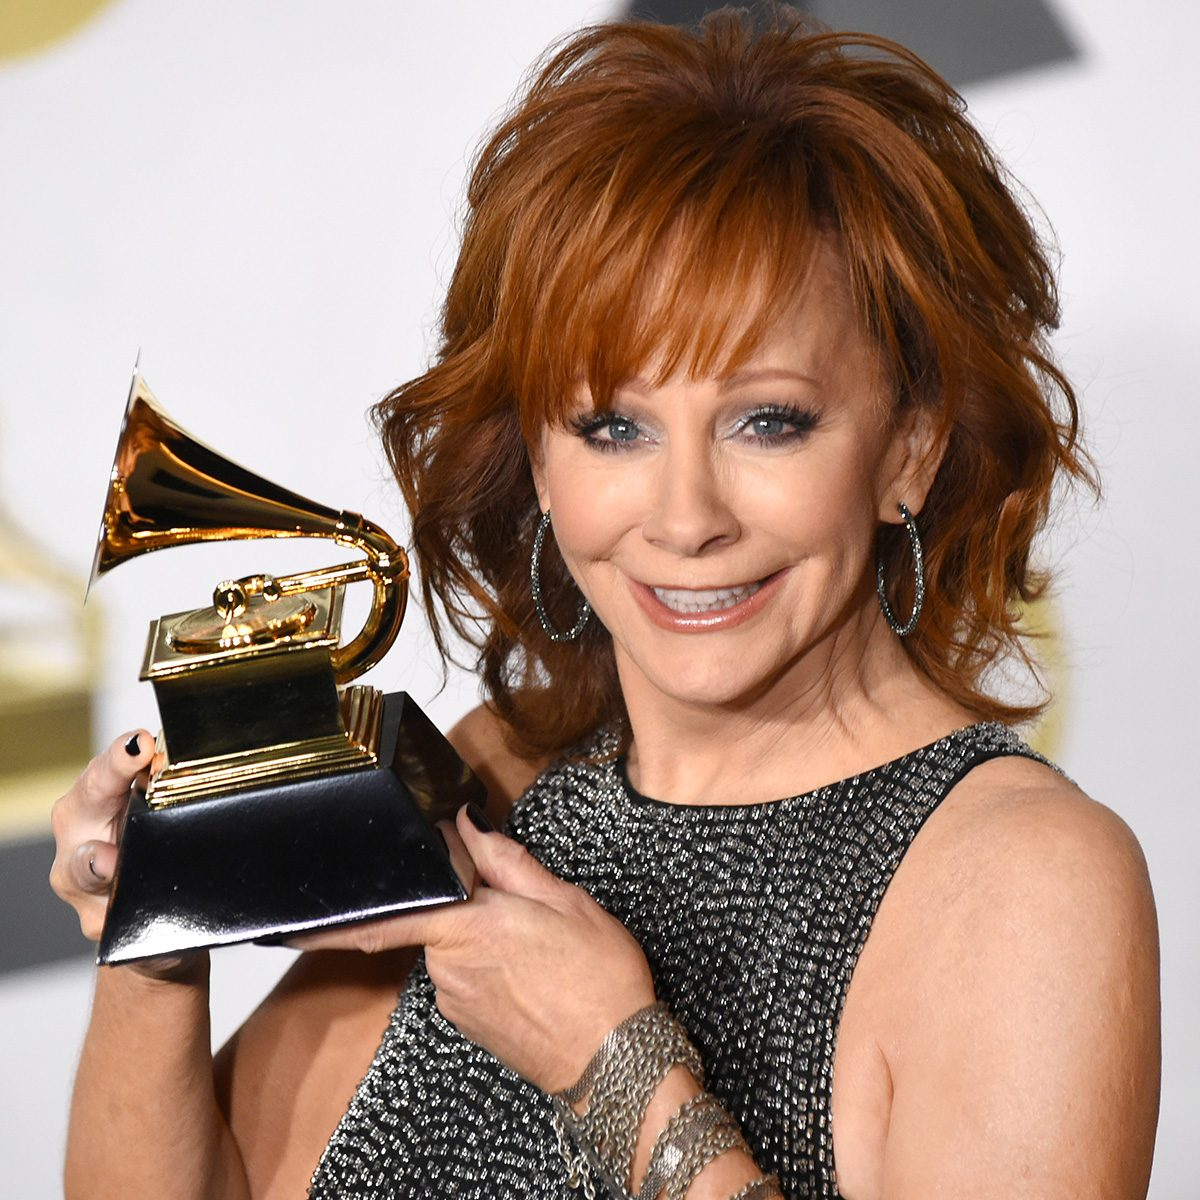 Mandatory Credit: Photo by MJ Photos/REX/Shutterstock (9336009ab) Reba McEntire 60th Annual Grammy Awards, Press Room, New York, USA - 28 Jan 2018